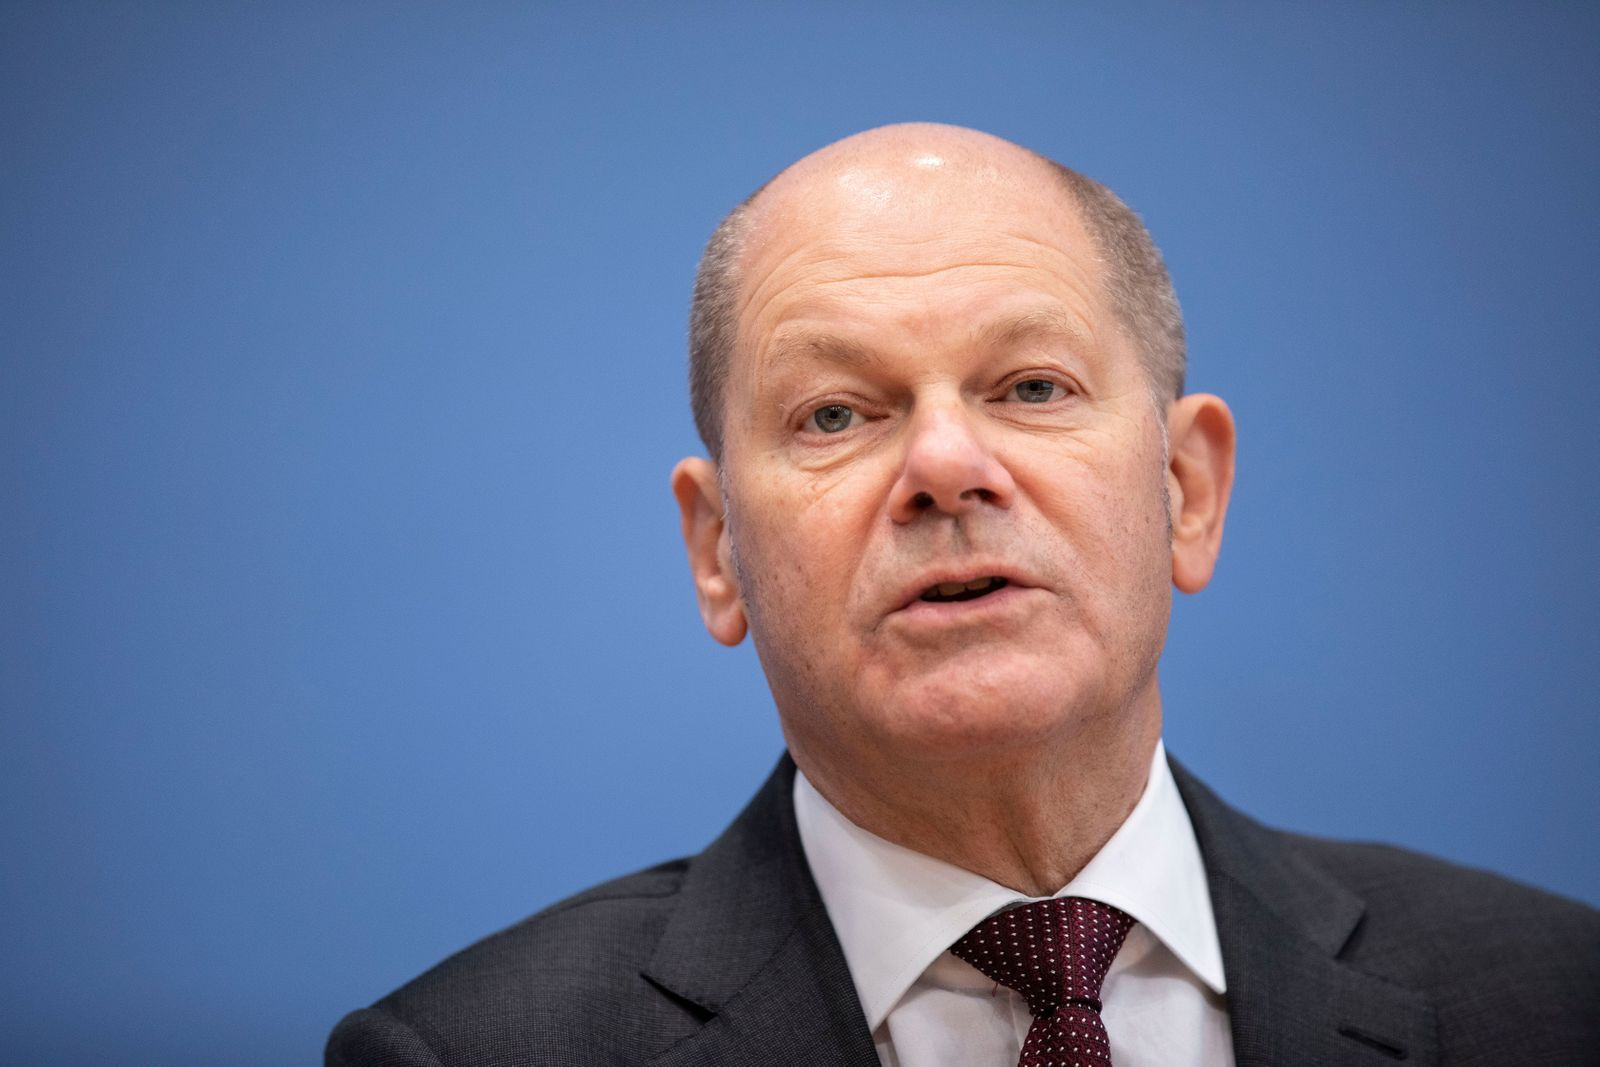 German Government Presents Economic Strategy For Weathering Coming Semi-Lockdown, Berlin, Germany - 29 Oct 2020